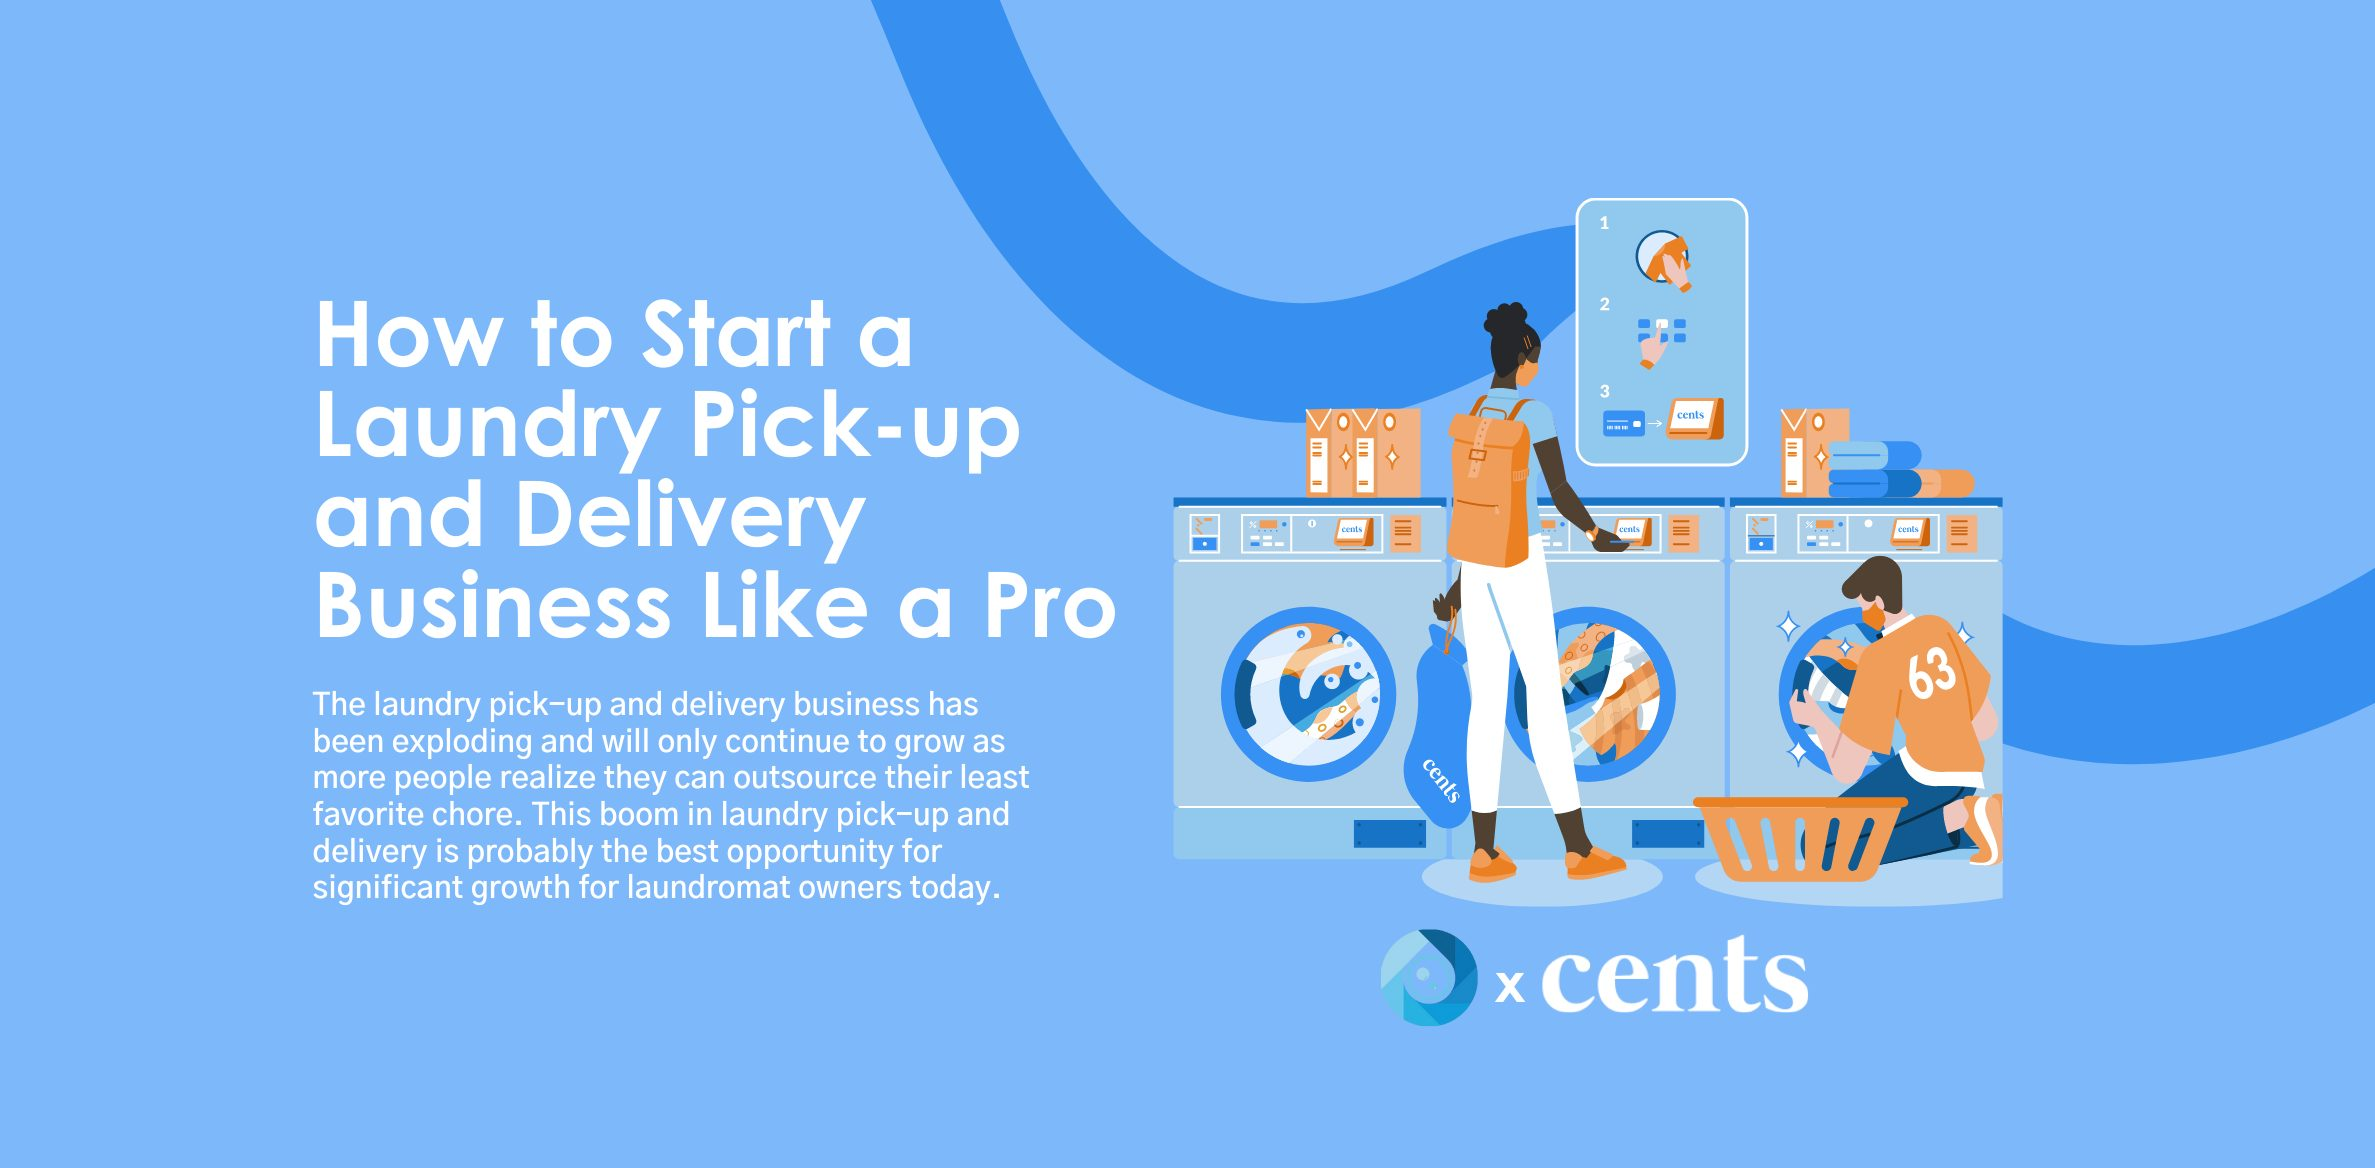 How to Start a Laundry Pick-up and Delivery Business Like a Pro